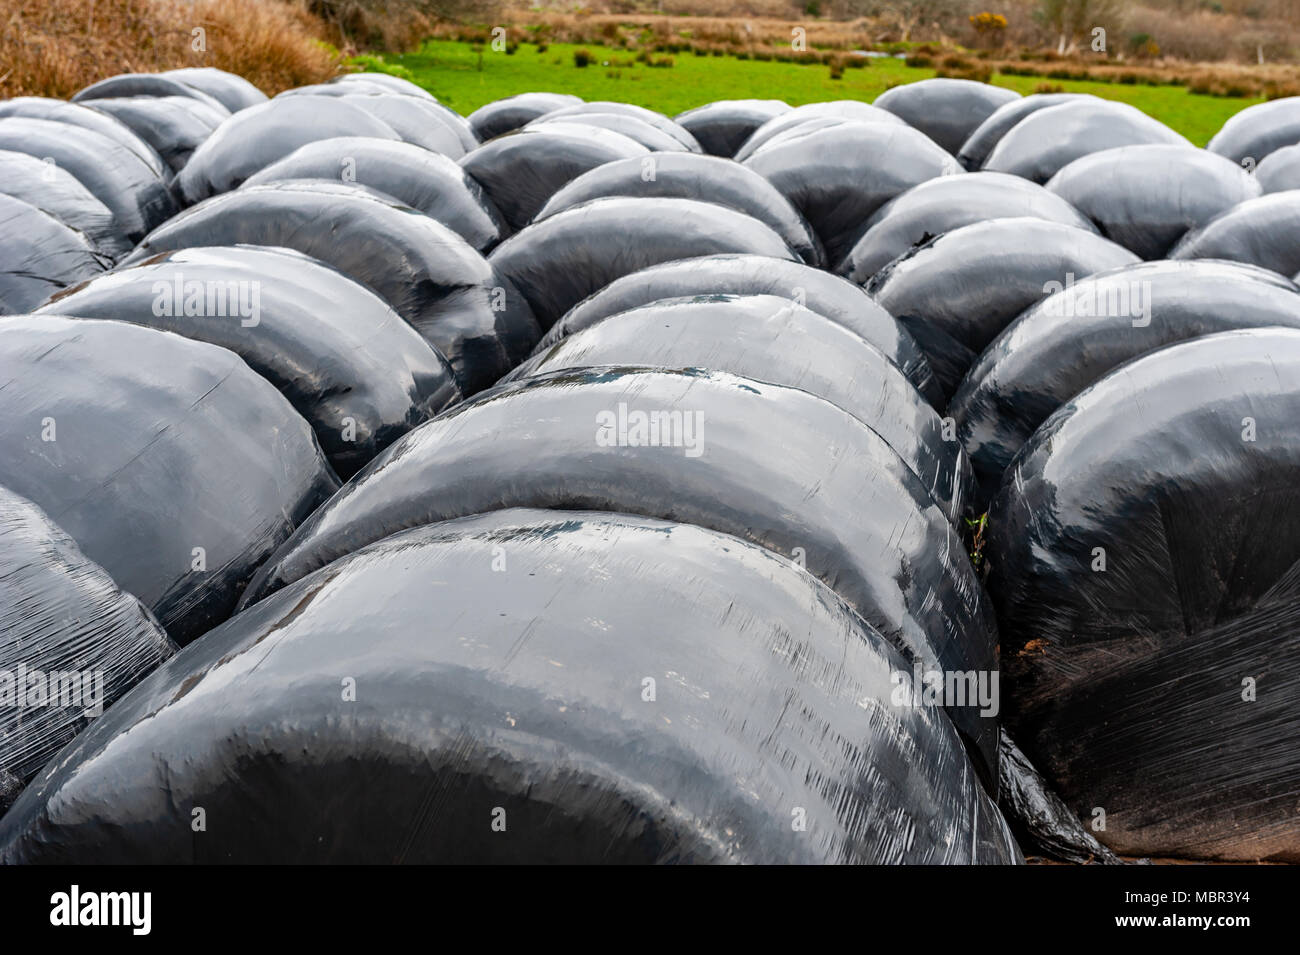 Bails of animal feed in a field during the fodder crisis in County Cork, Ireland. - Stock Image